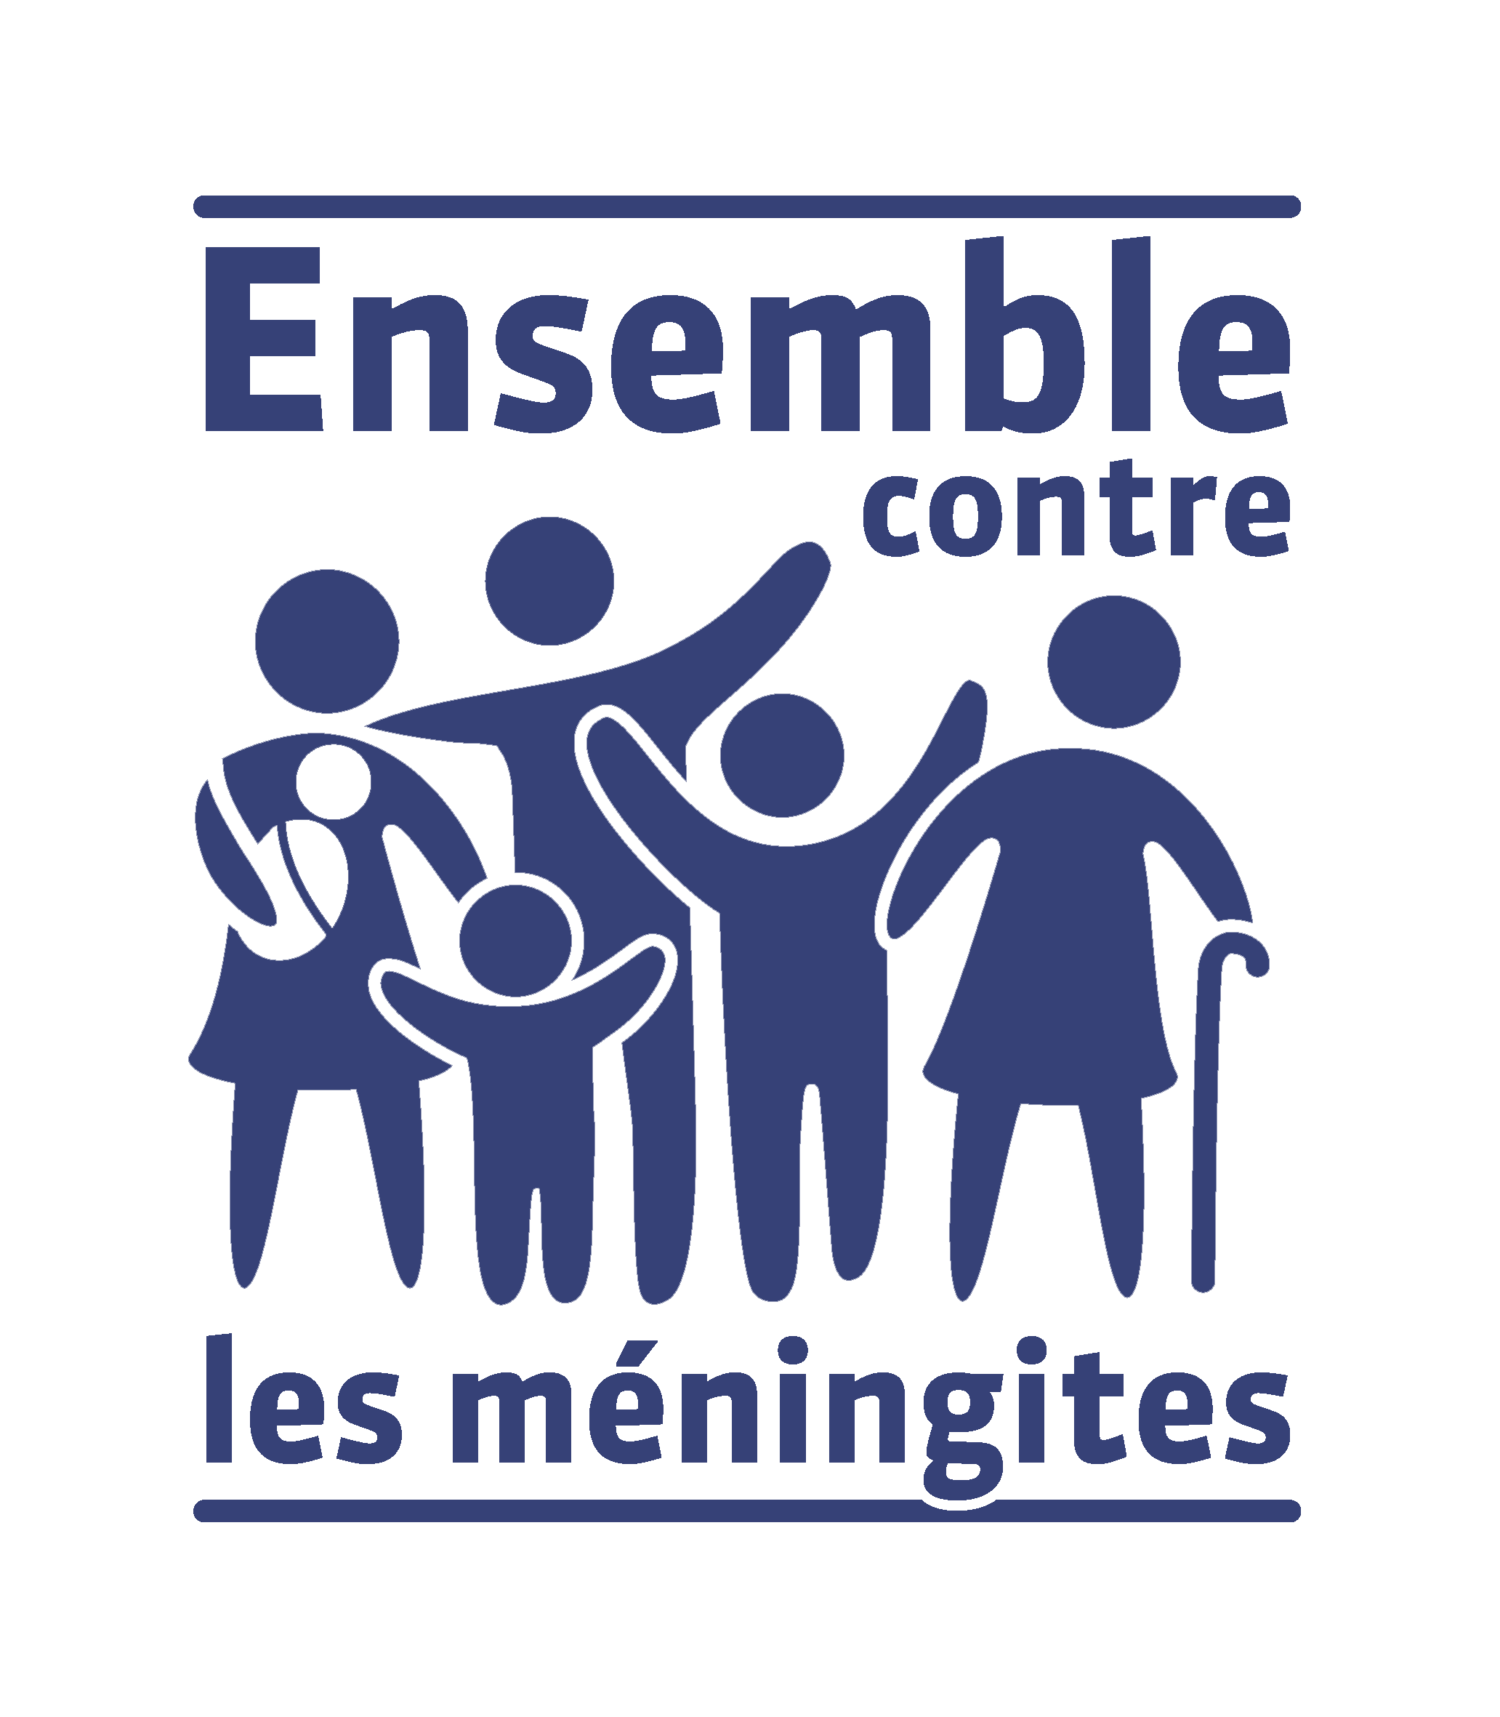 Ensemble contre les meningites